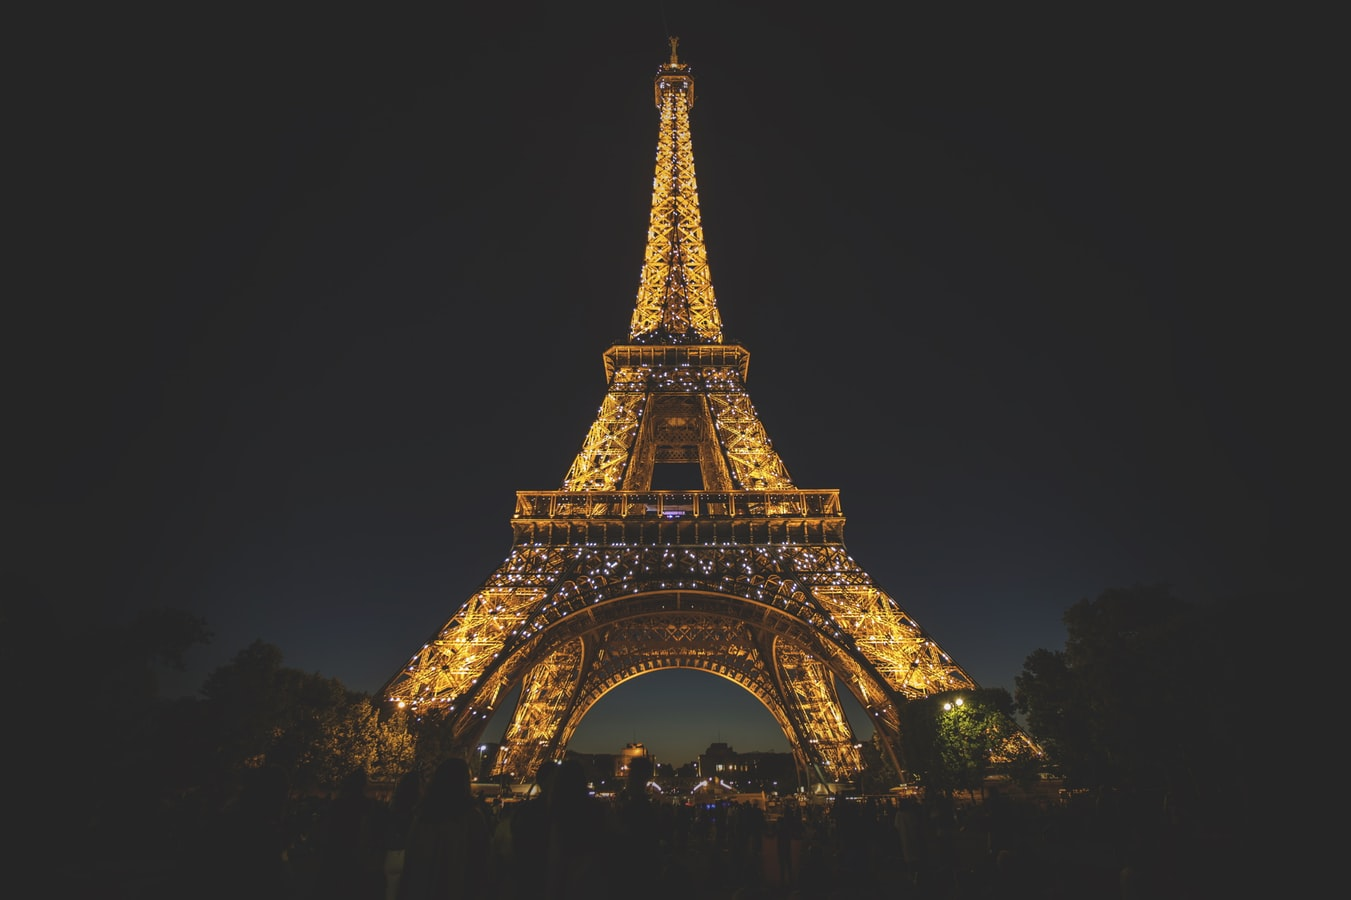 Food Market at the Eiffel Tower